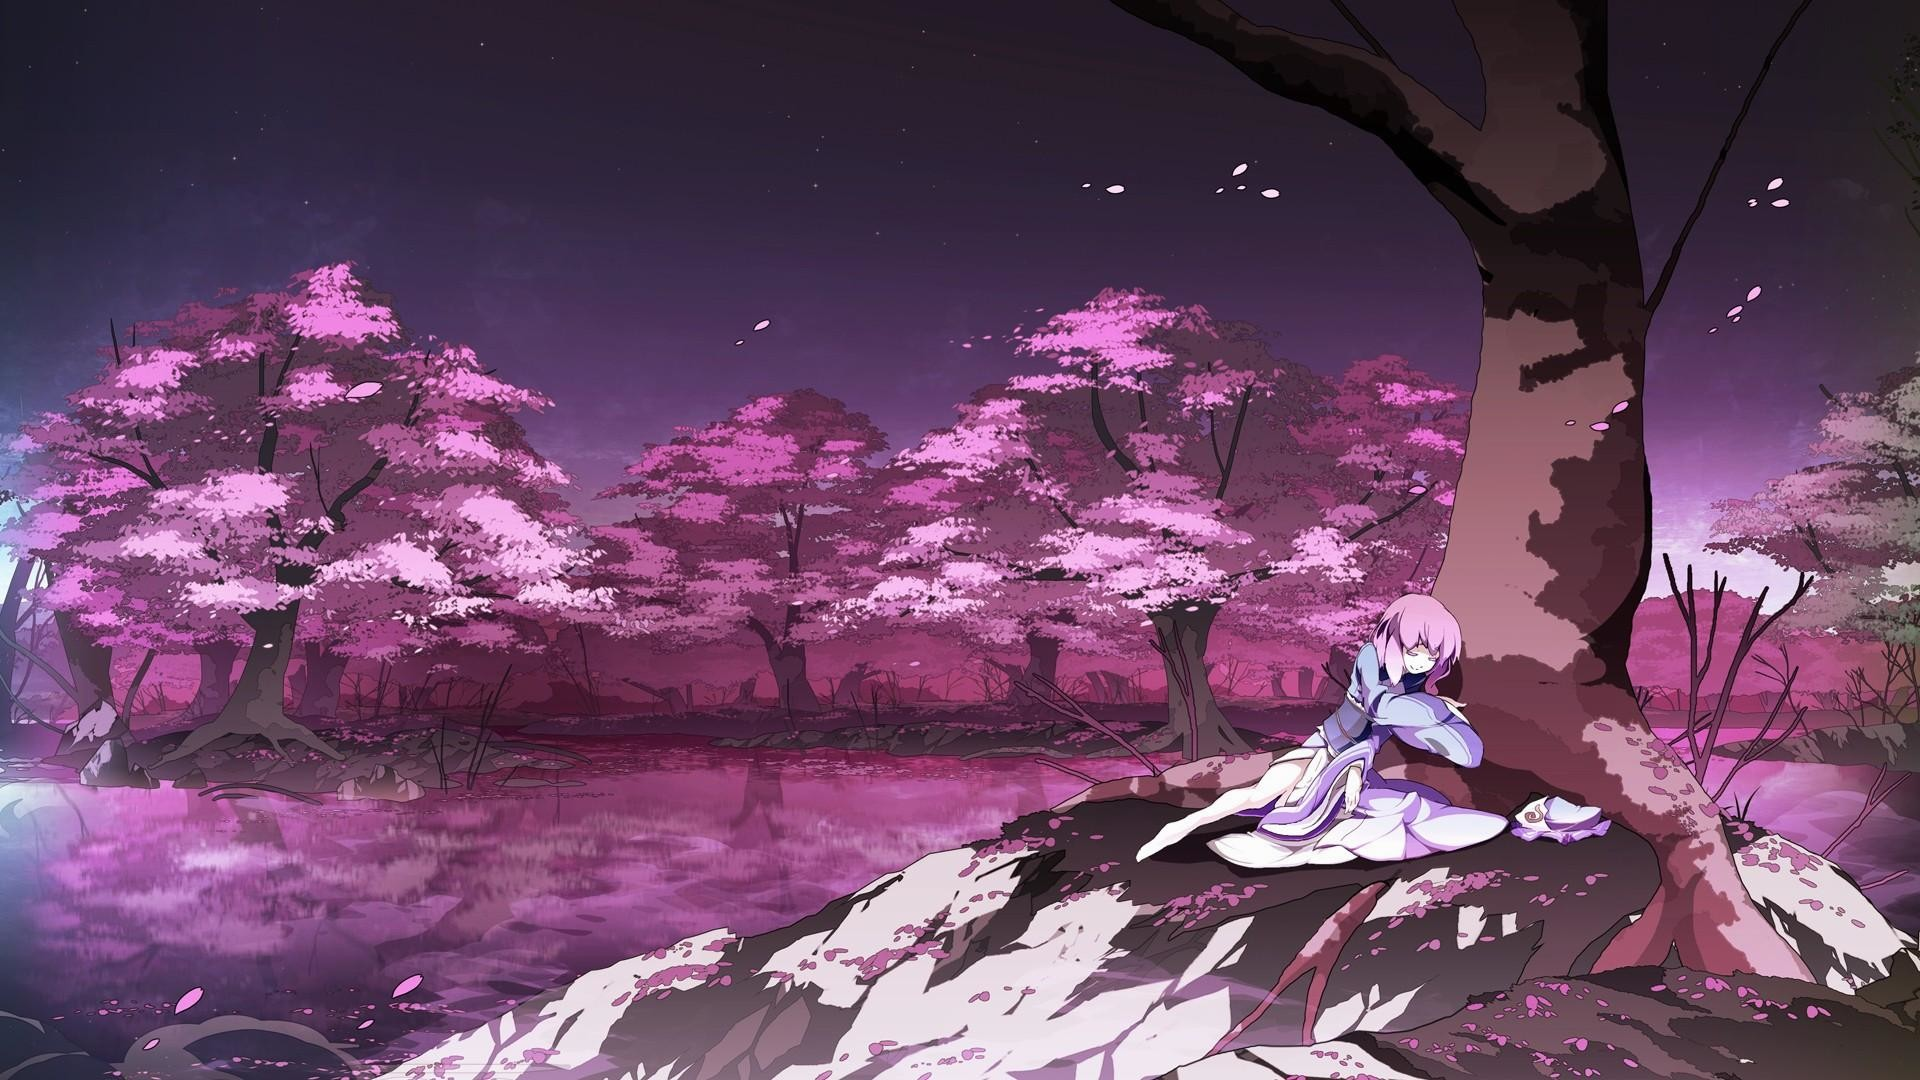 wallpaper.wiki-HD-Anime-Cherry-Blossom-Background-PIC-